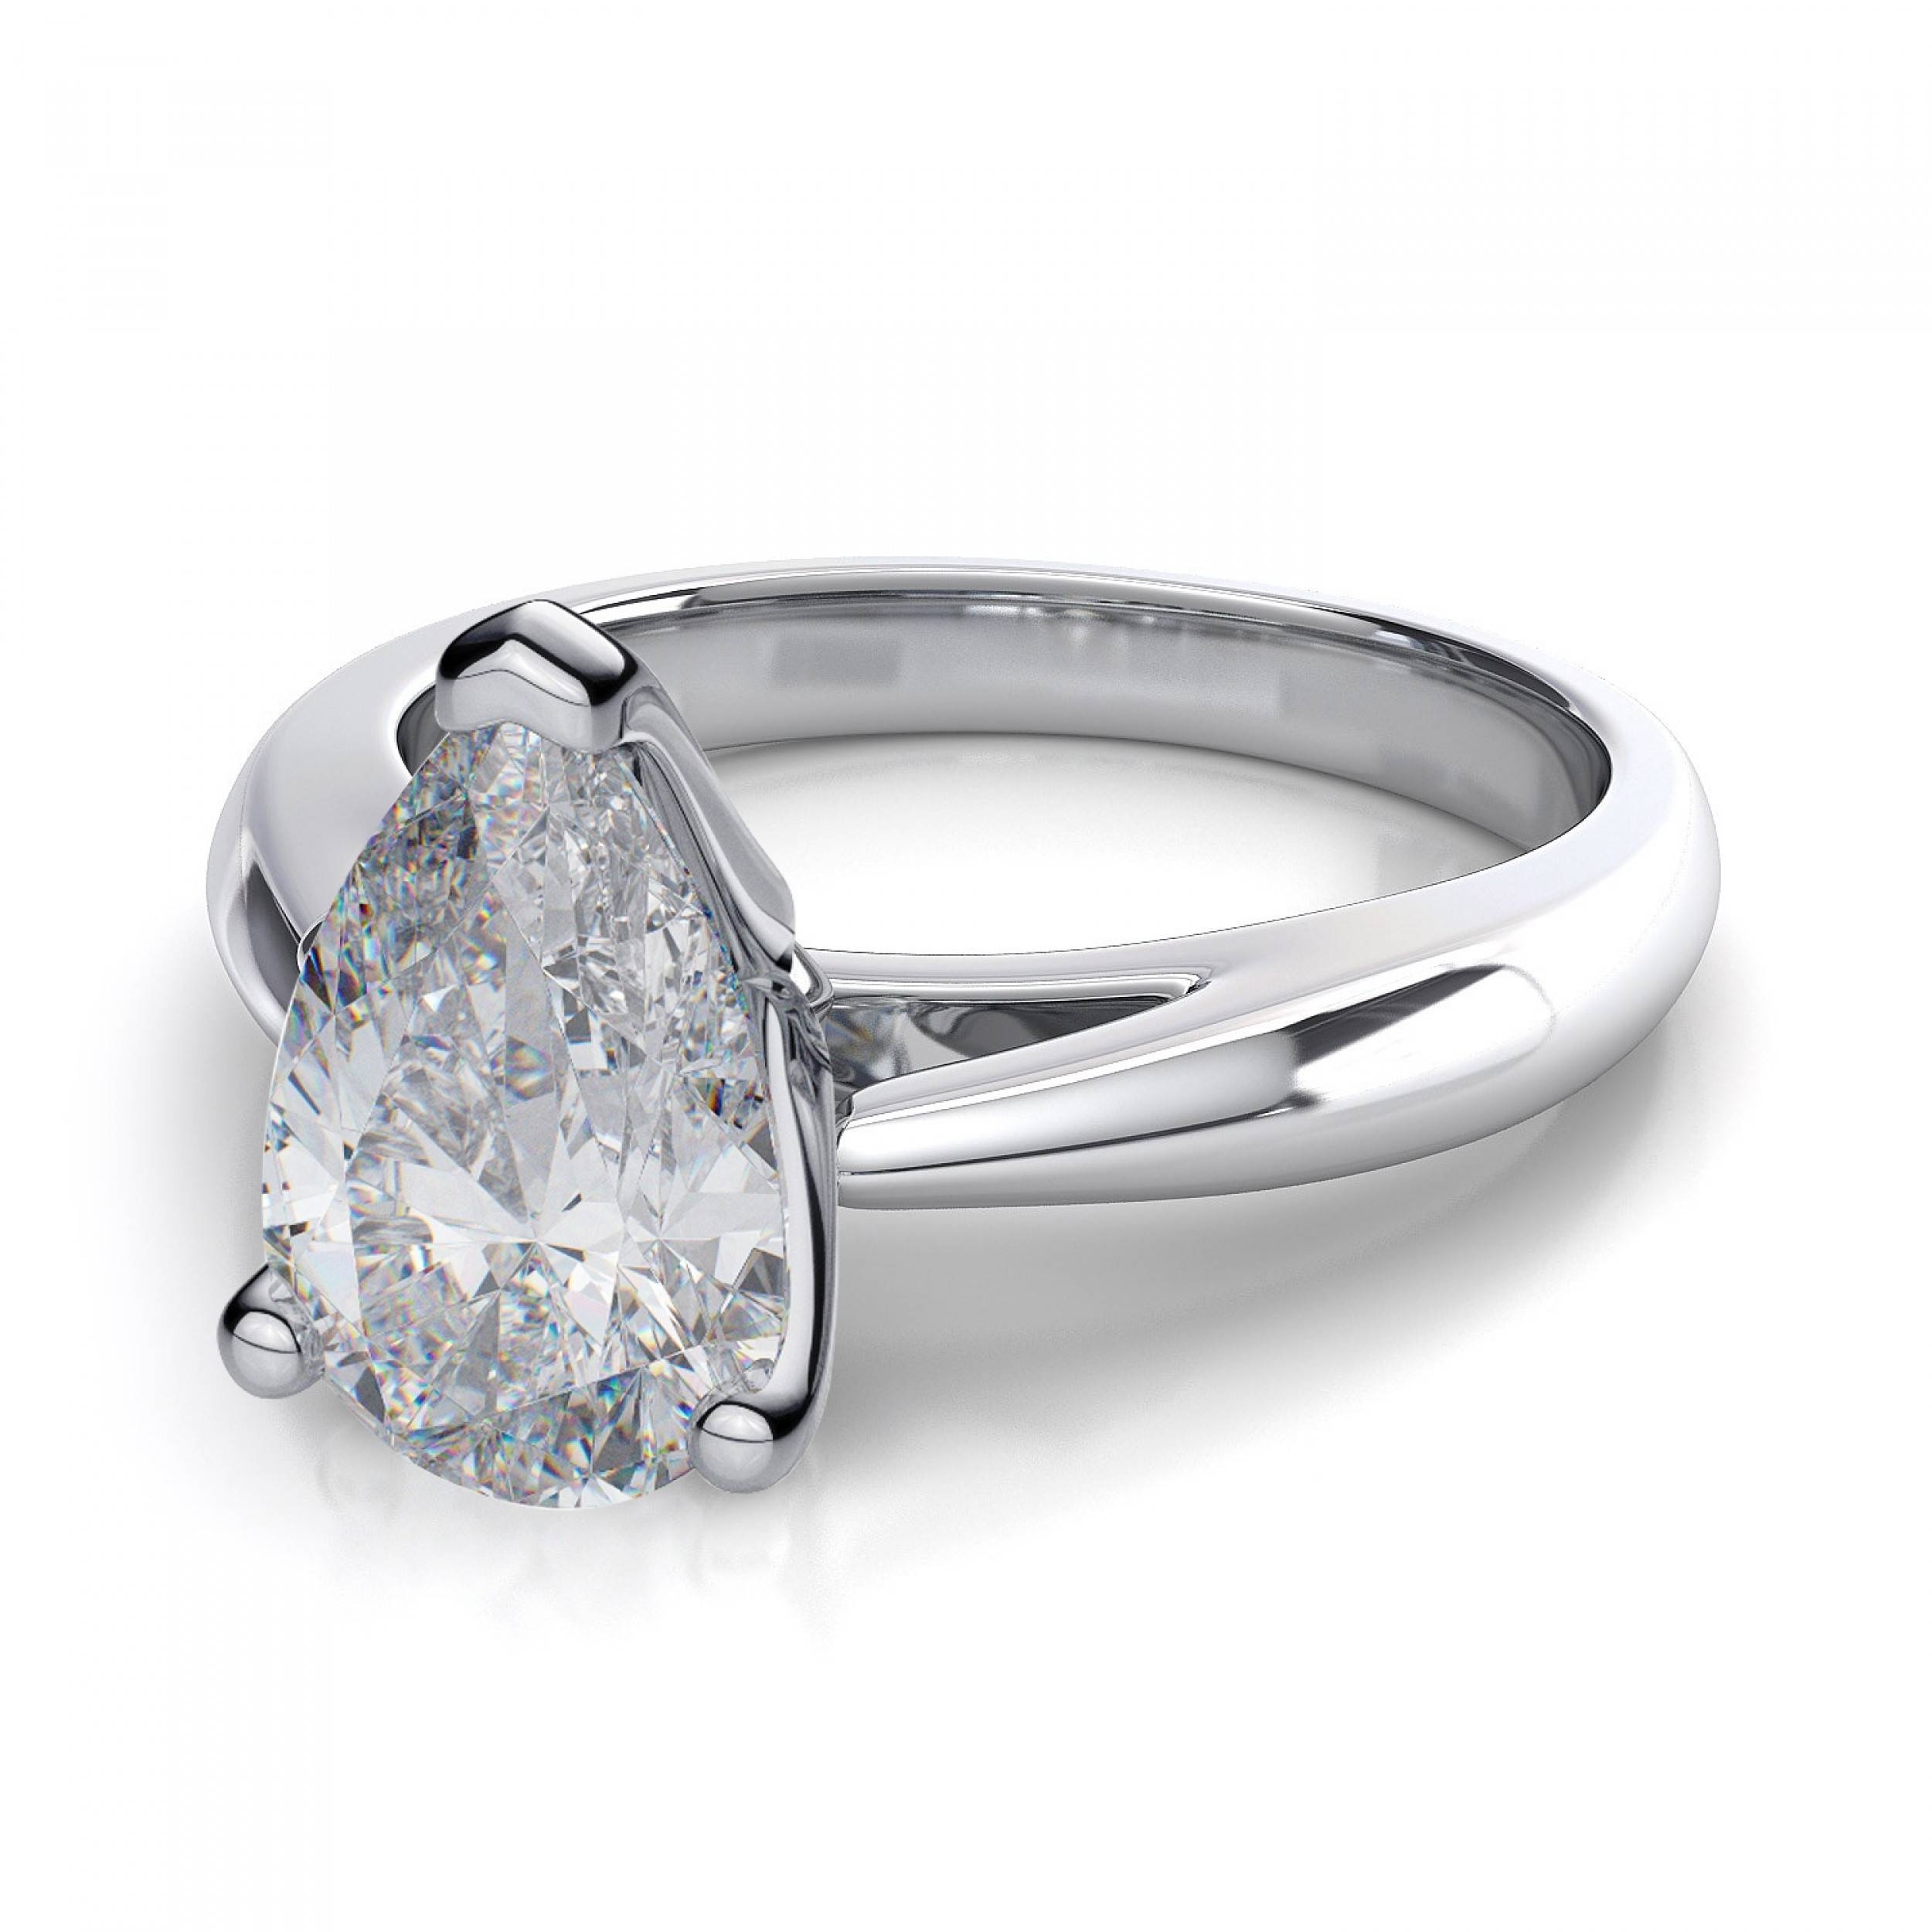 Knife Edge Pear Shape Diamond Solitaire Ring – Platinum Inside Pear Shaped Engagement Ring Settings (View 13 of 15)